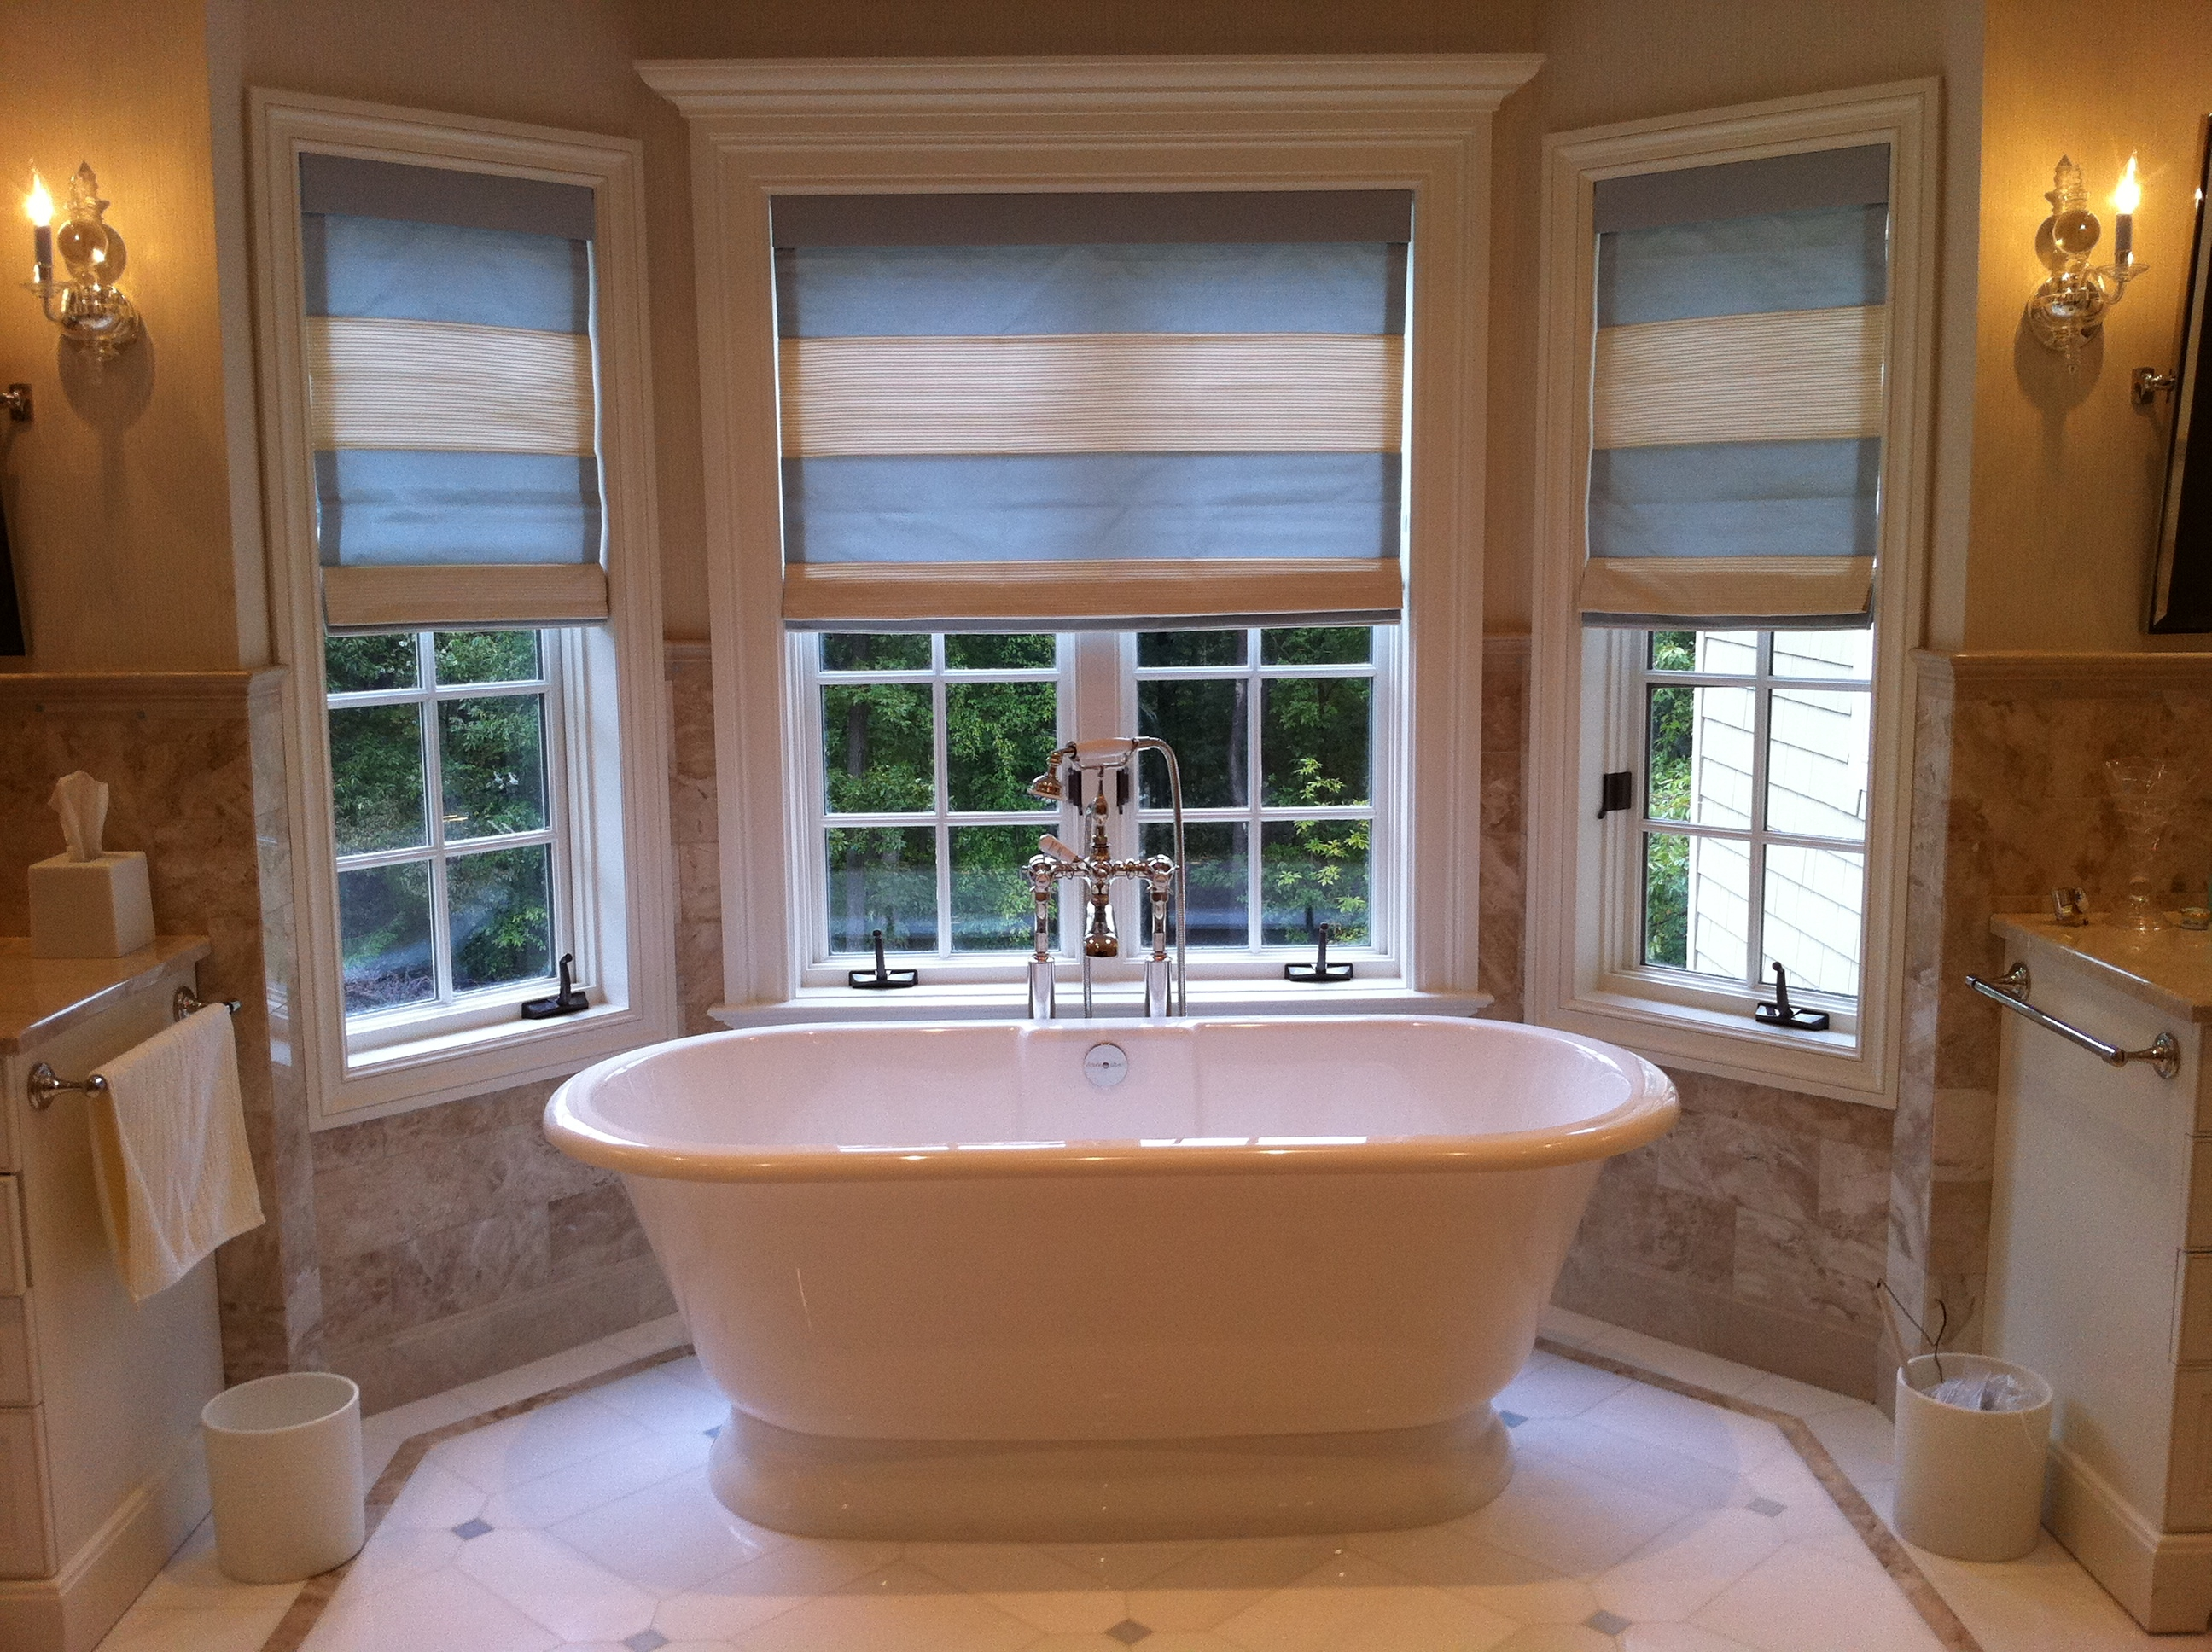 Bathroom window blinds and shades -  Shades Bathroom Window Coverings Inspirations Download